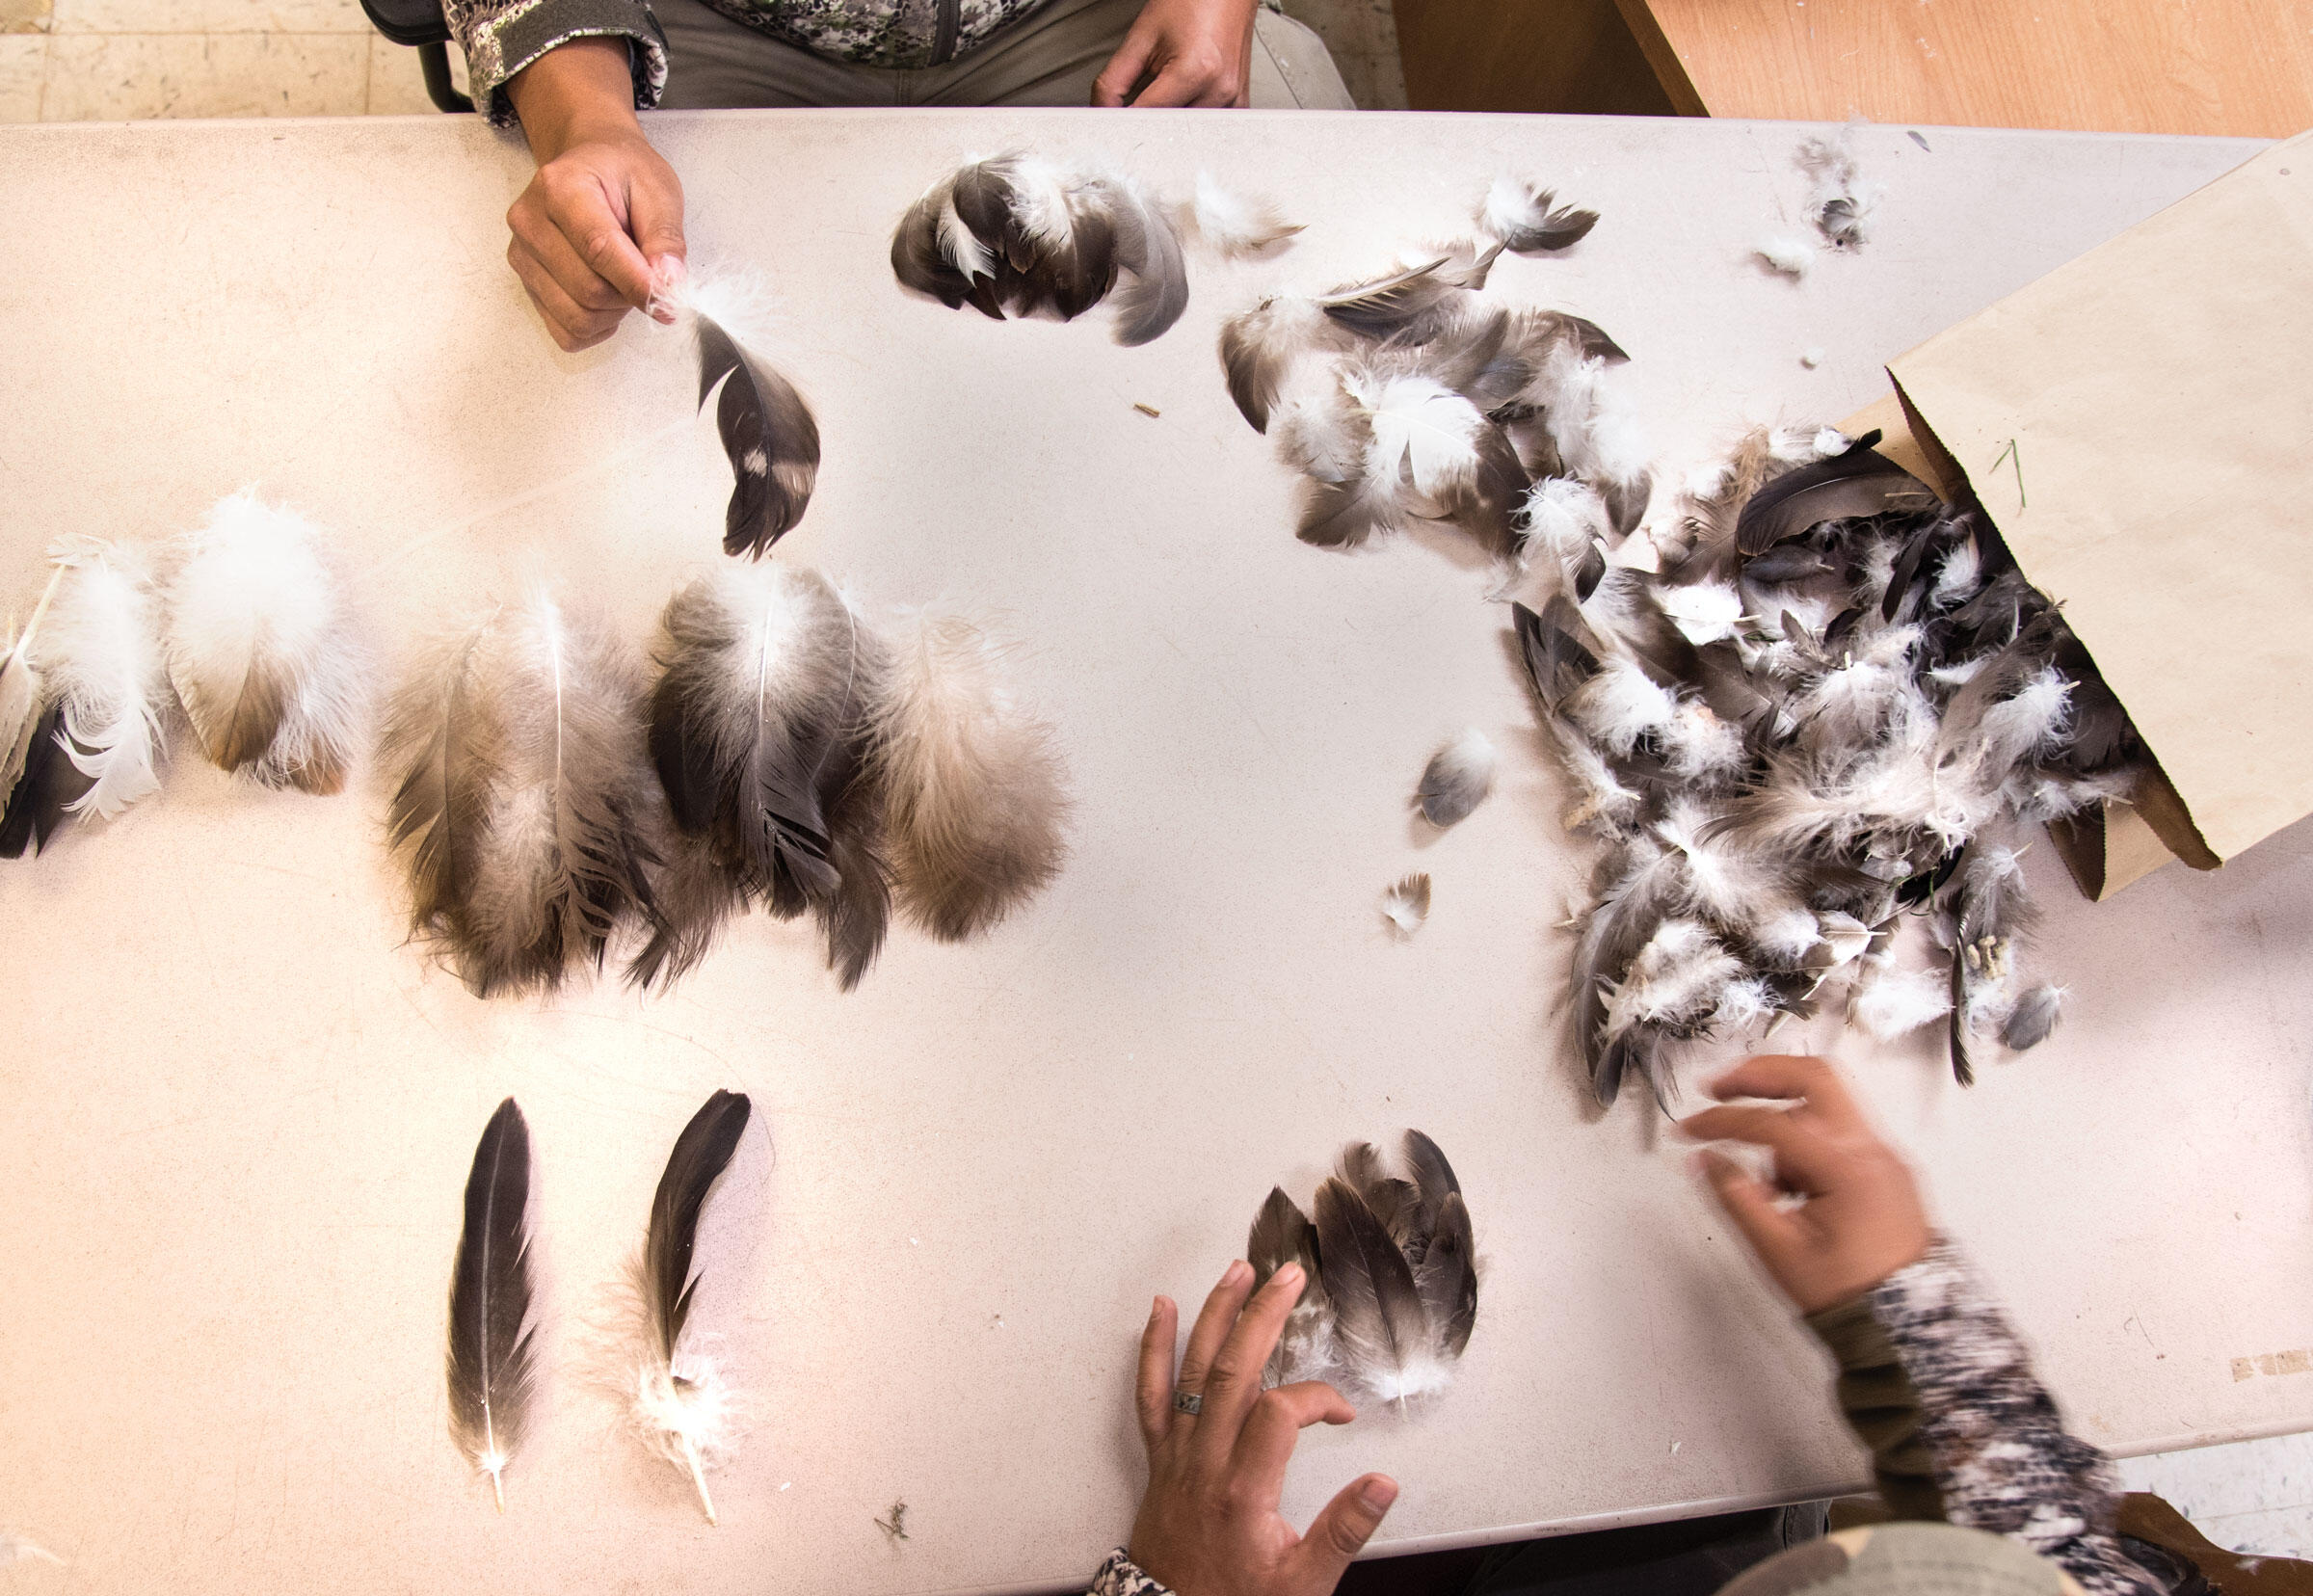 Assistants at the Zuni Pueblo aviary sort eagle feathers by type, which tribe members can request for various religious uses. Dawn Kish